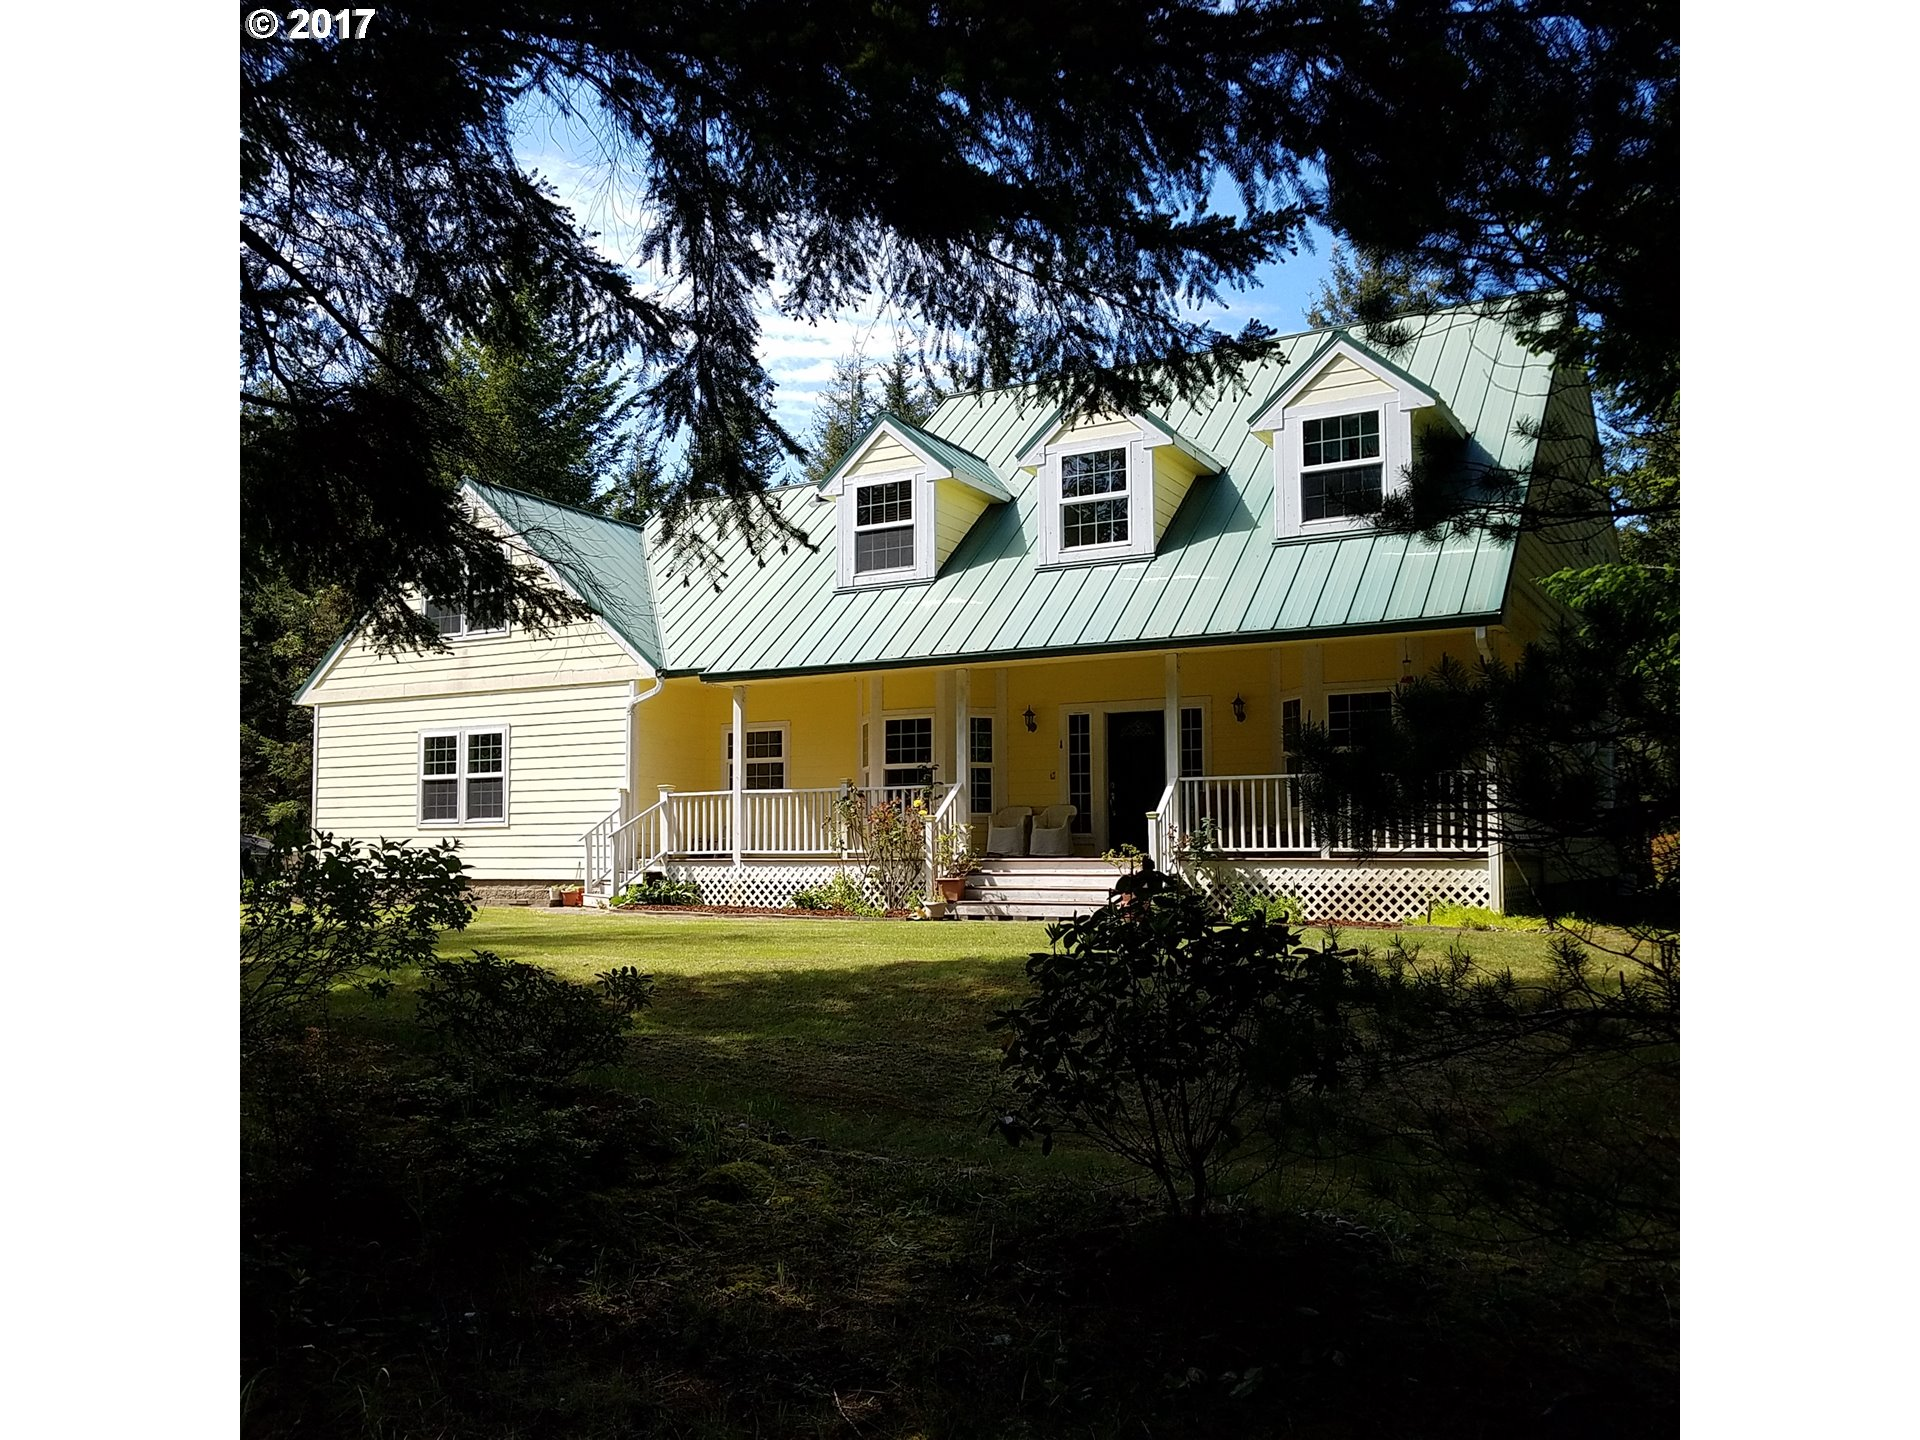 87601 HOLLY LN Bandon, OR 97411 - MLS #: 17490547